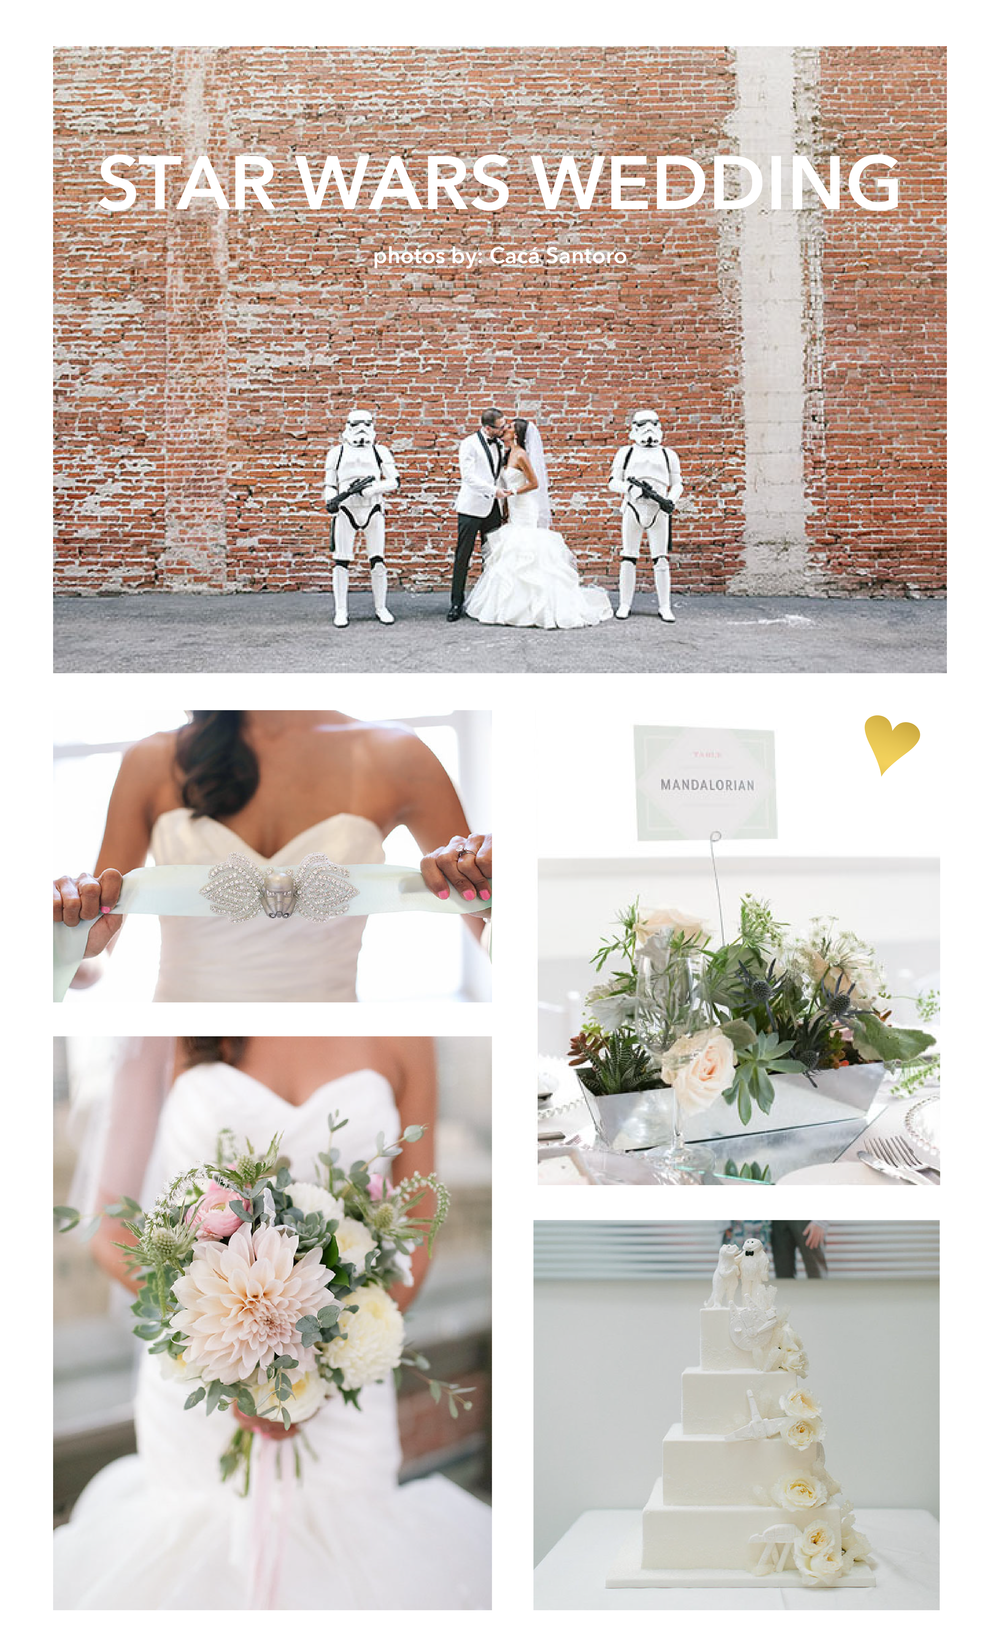 Photography:Cacá Santoro Photography• Venue:loftSeven(Los Angeles, CA) •in-house Event Planner: Stephanie Estes Events •Florals:Primary Petals•Wedding Dress:Hayley Paigefrom Blush Bridal Couture•Star Wars inspired belt hand made by bride •Paper goods +coasters:MaeMae & Co.•Cake:The Buttered End•Stormtroopers: Mark Edwards & Michael Bender of the 501st Legion